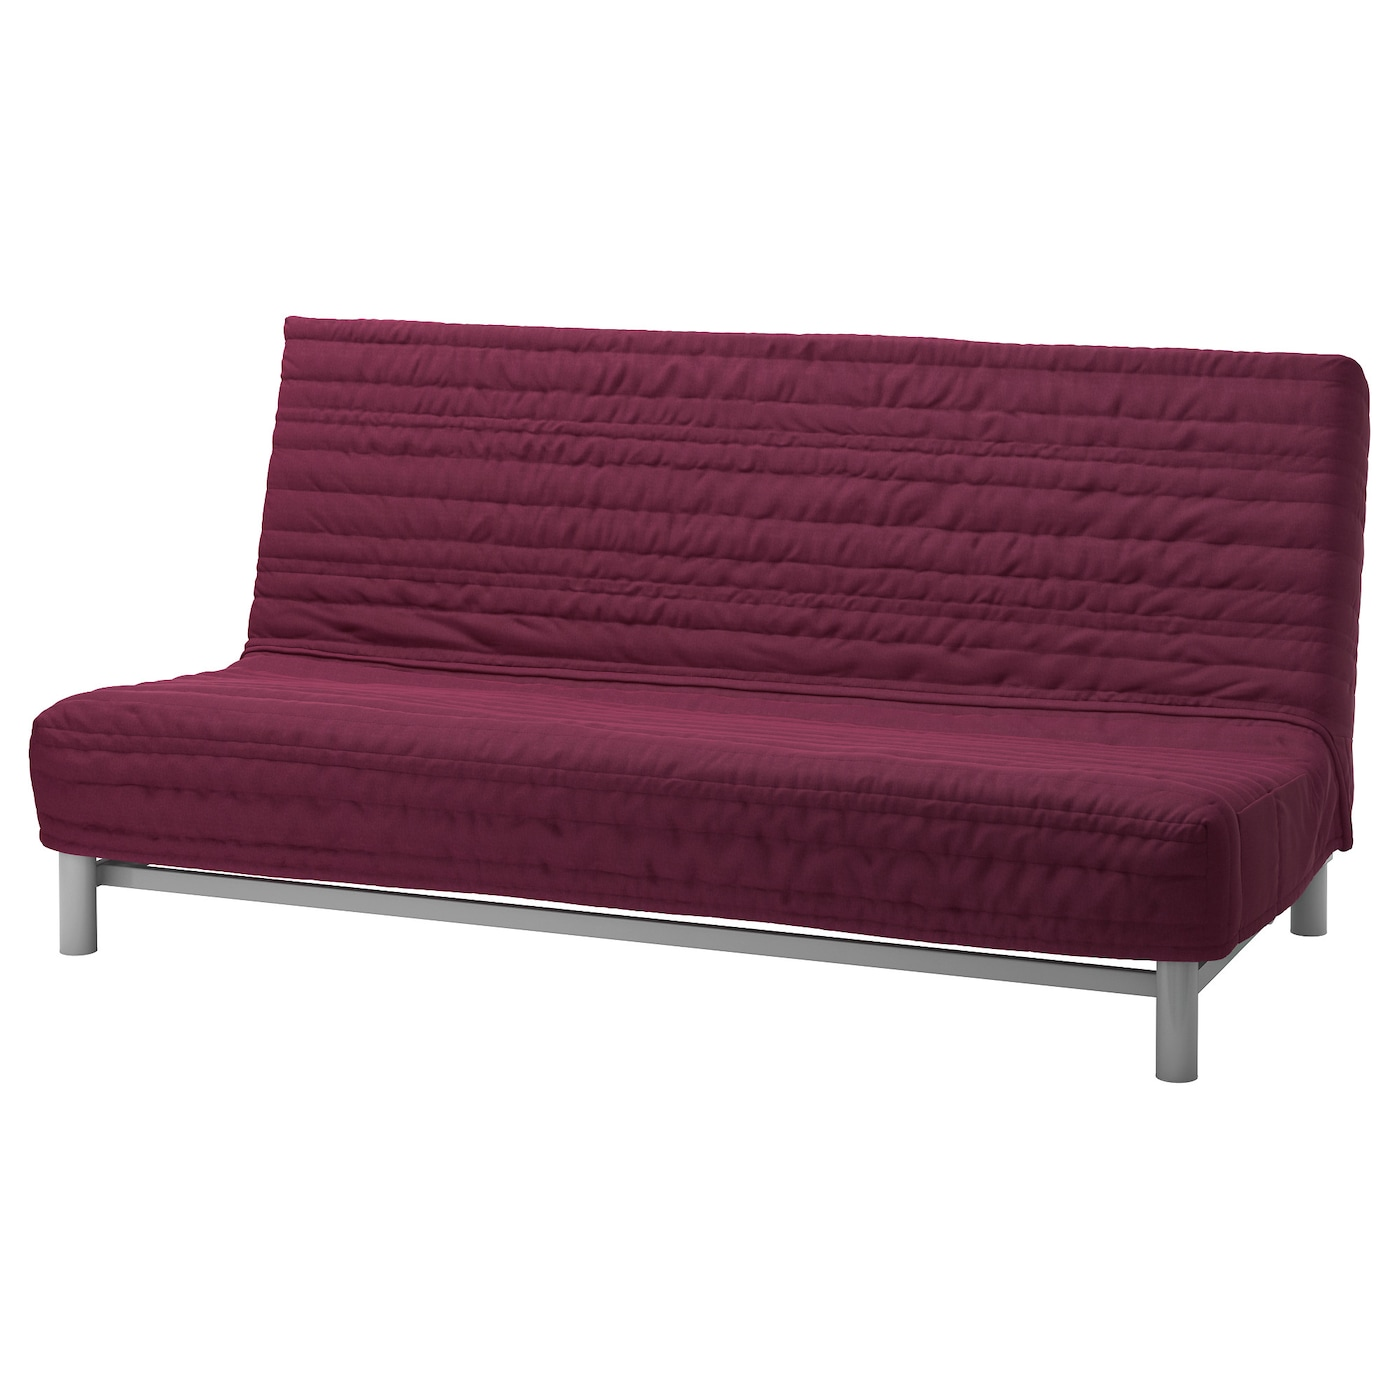 Beddinge l v s three seat sofa bed knisa cerise ikea Ikea divan beds